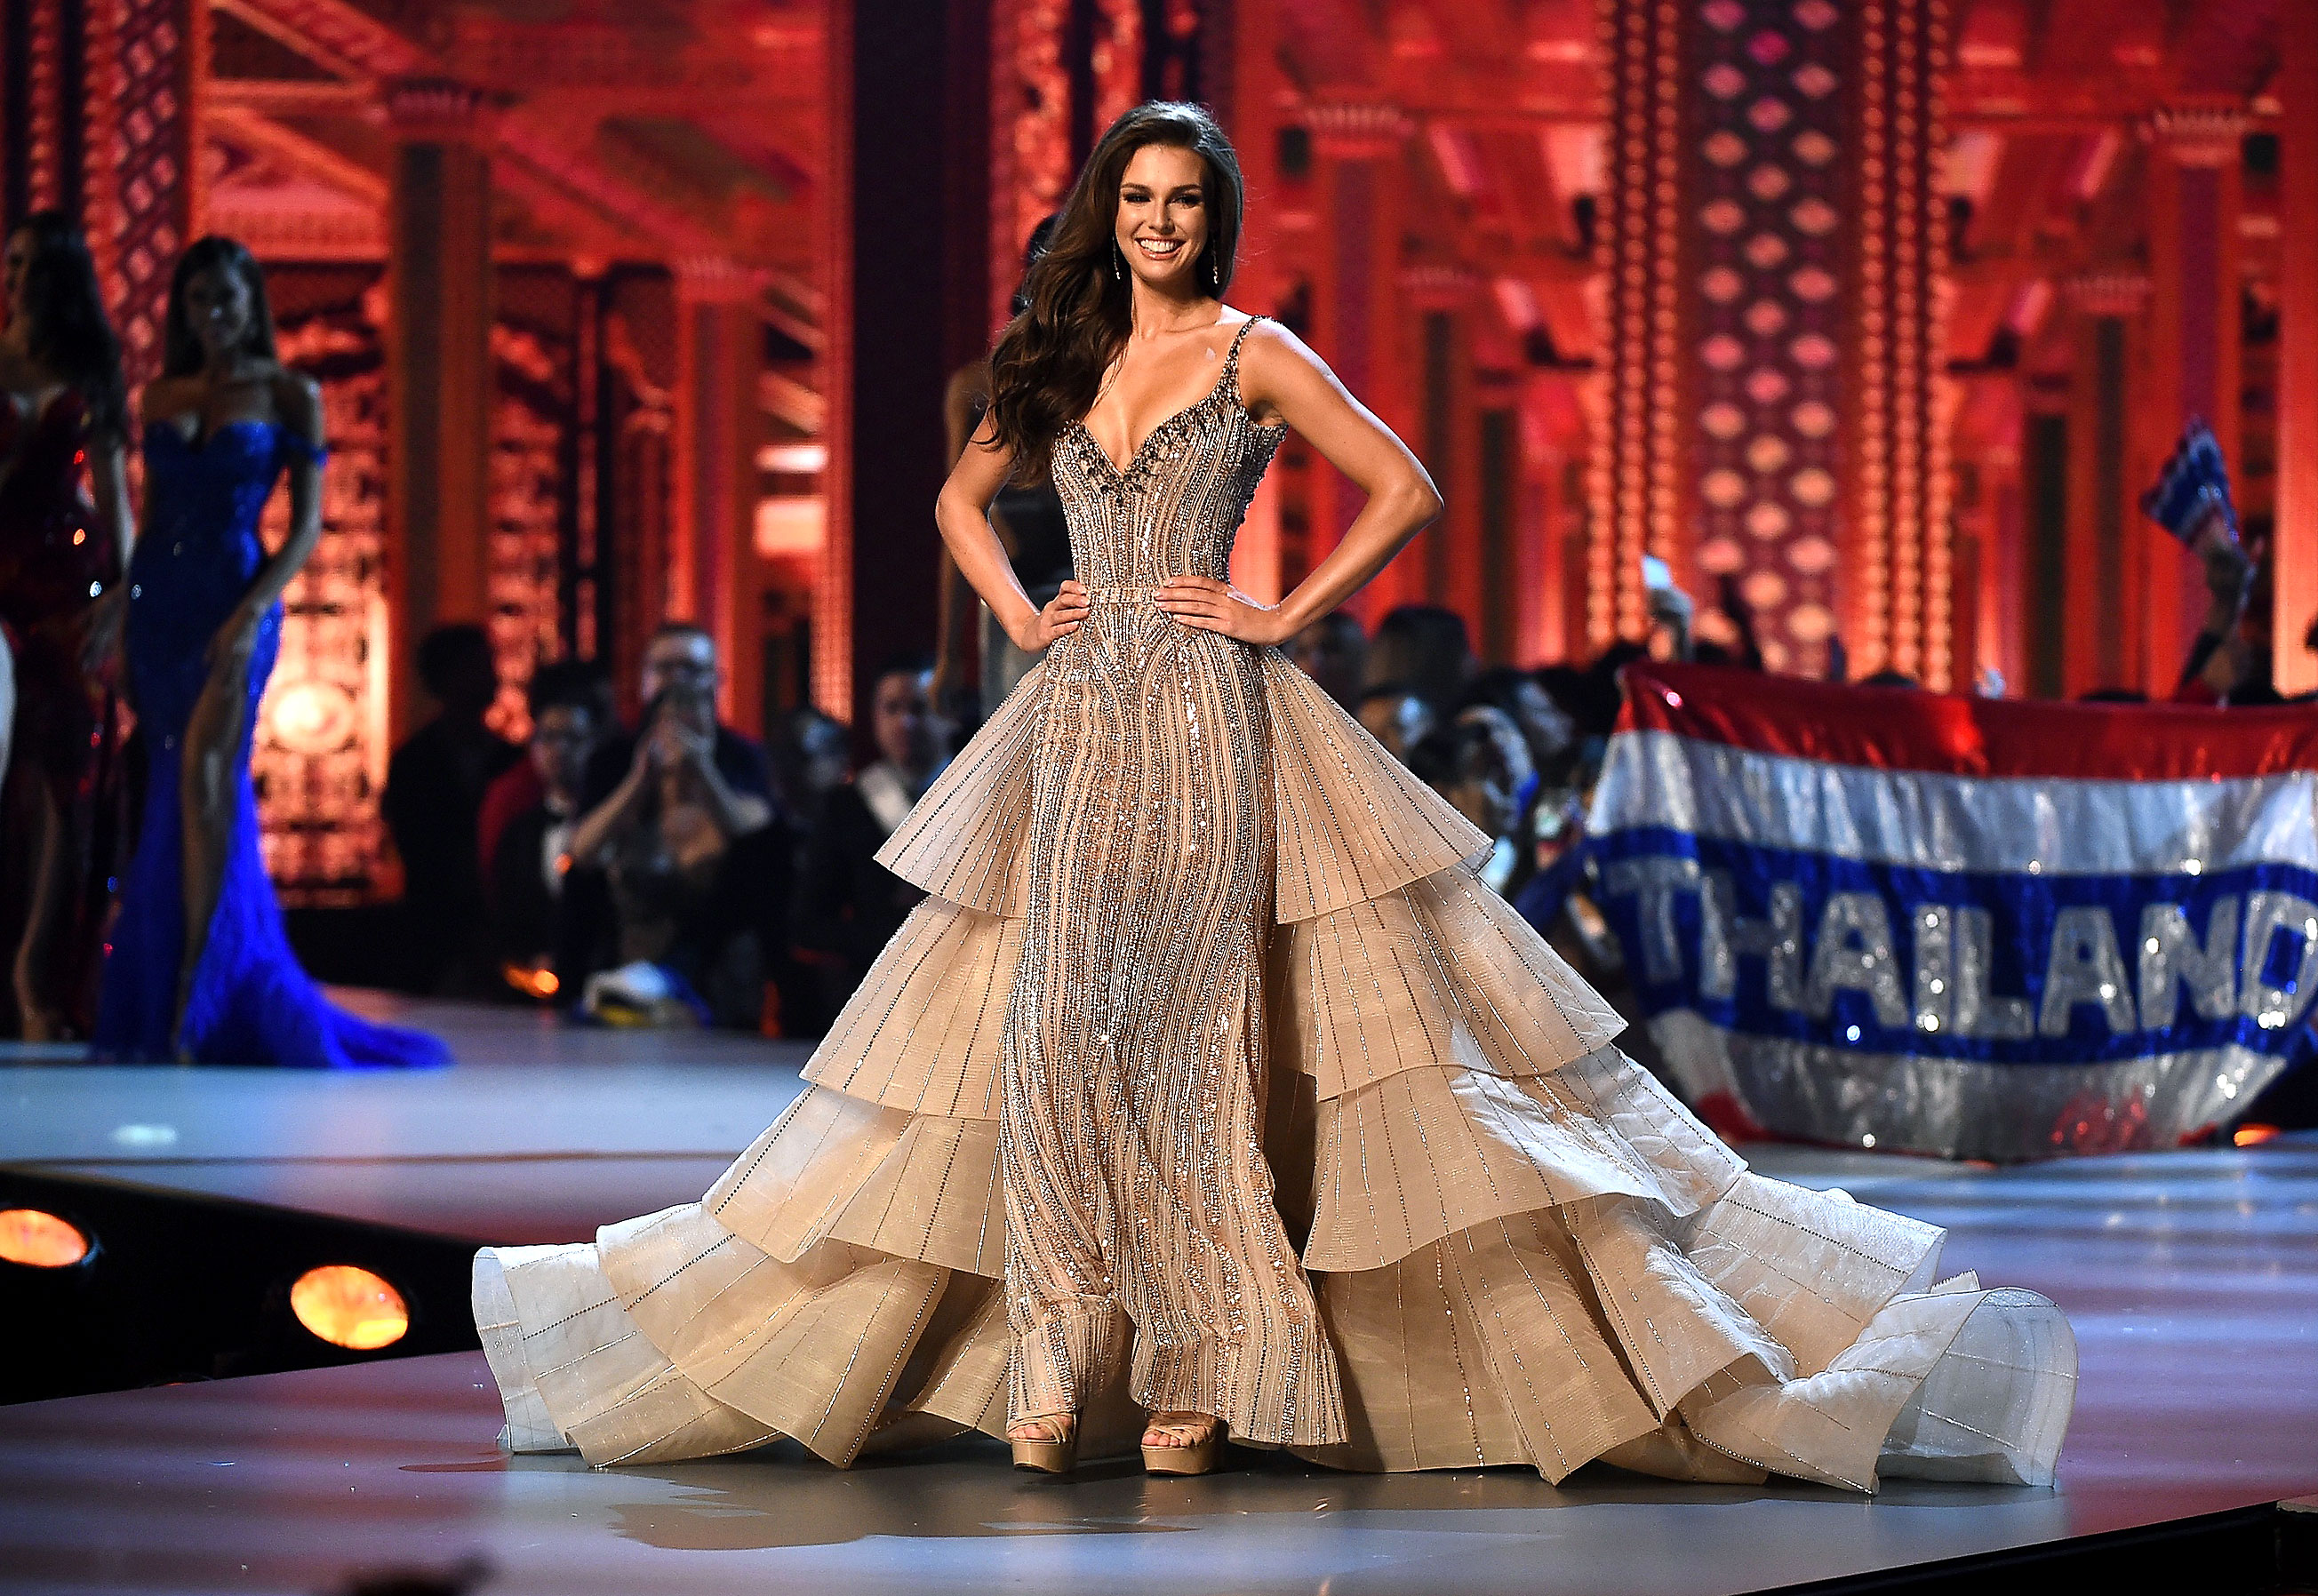 Miss-Canada-Marta-Stepien - In a beaded gown featuring a tiered train.